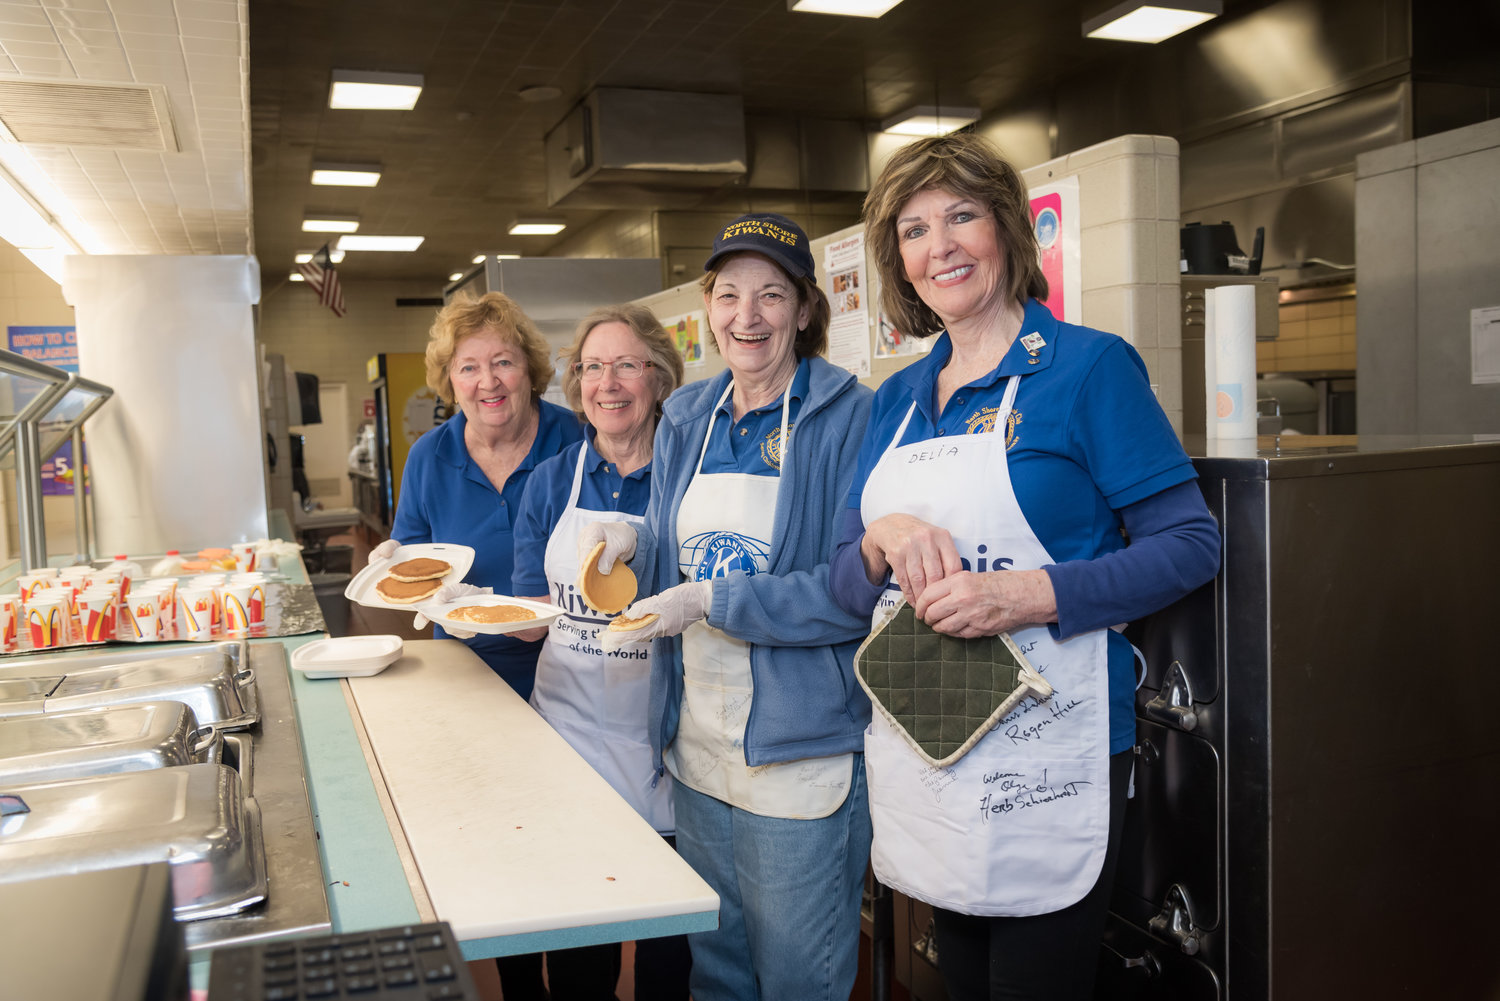 Kiwanians Merle DeMott, far left, Sonja Nelson, Meredith Brosnan and Delia Verna worked behind the line to serve up steamy plates of fluffy pancakes to guests.